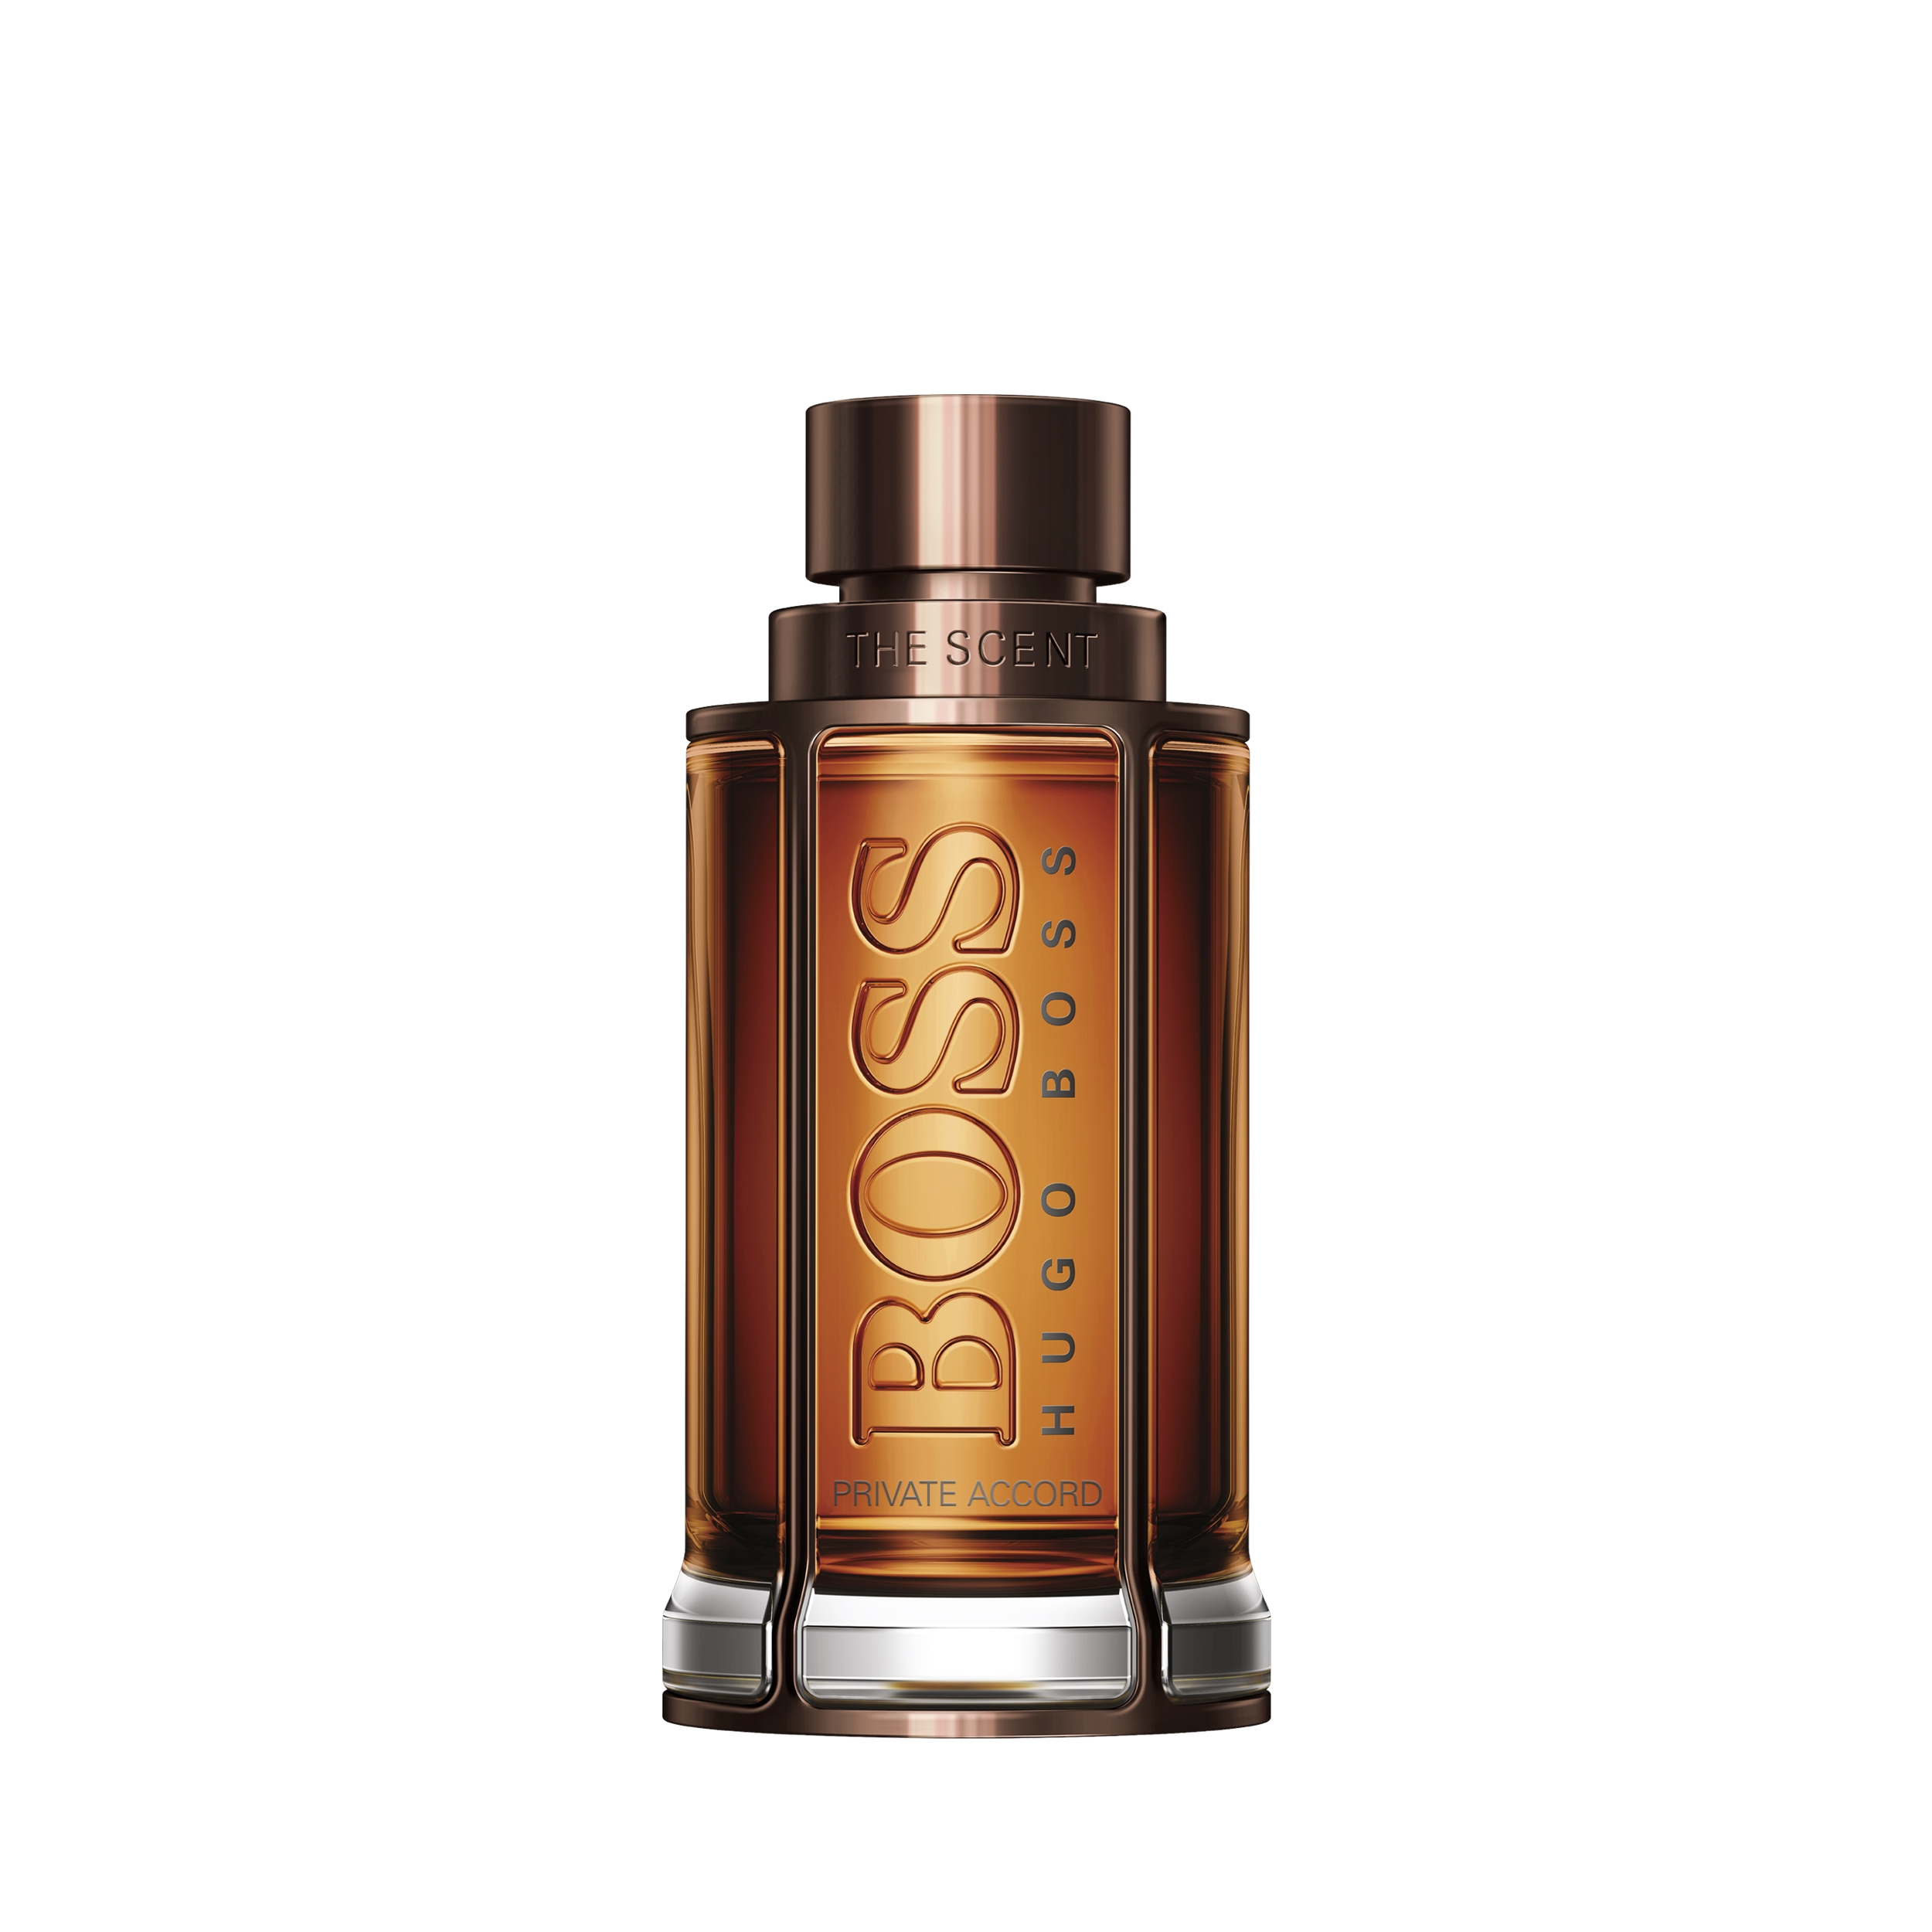 Hugo Boss BOSS The Scent Private Accord EDT, 50 ml